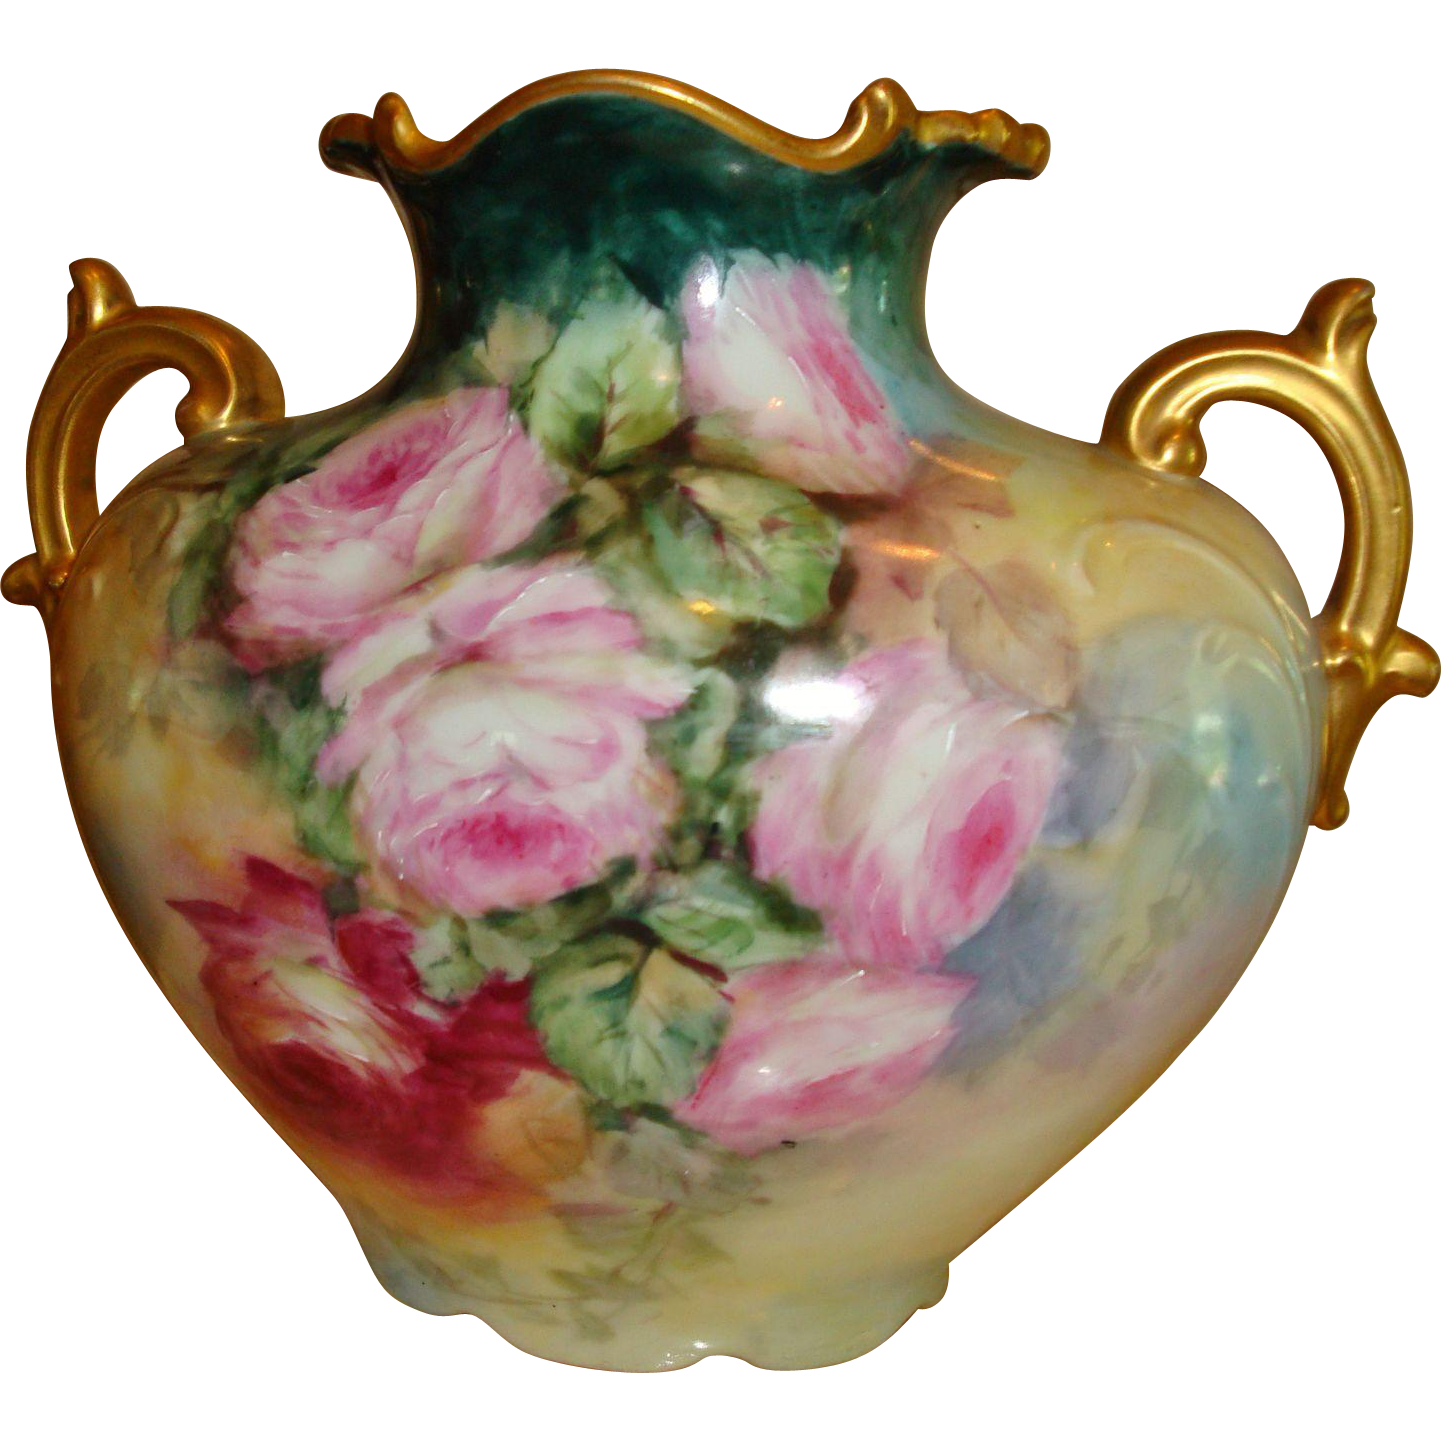 Amazing Antique Limoges France French Hand Painted Porcelain Pillow Vase Urn Gorgeous Roses